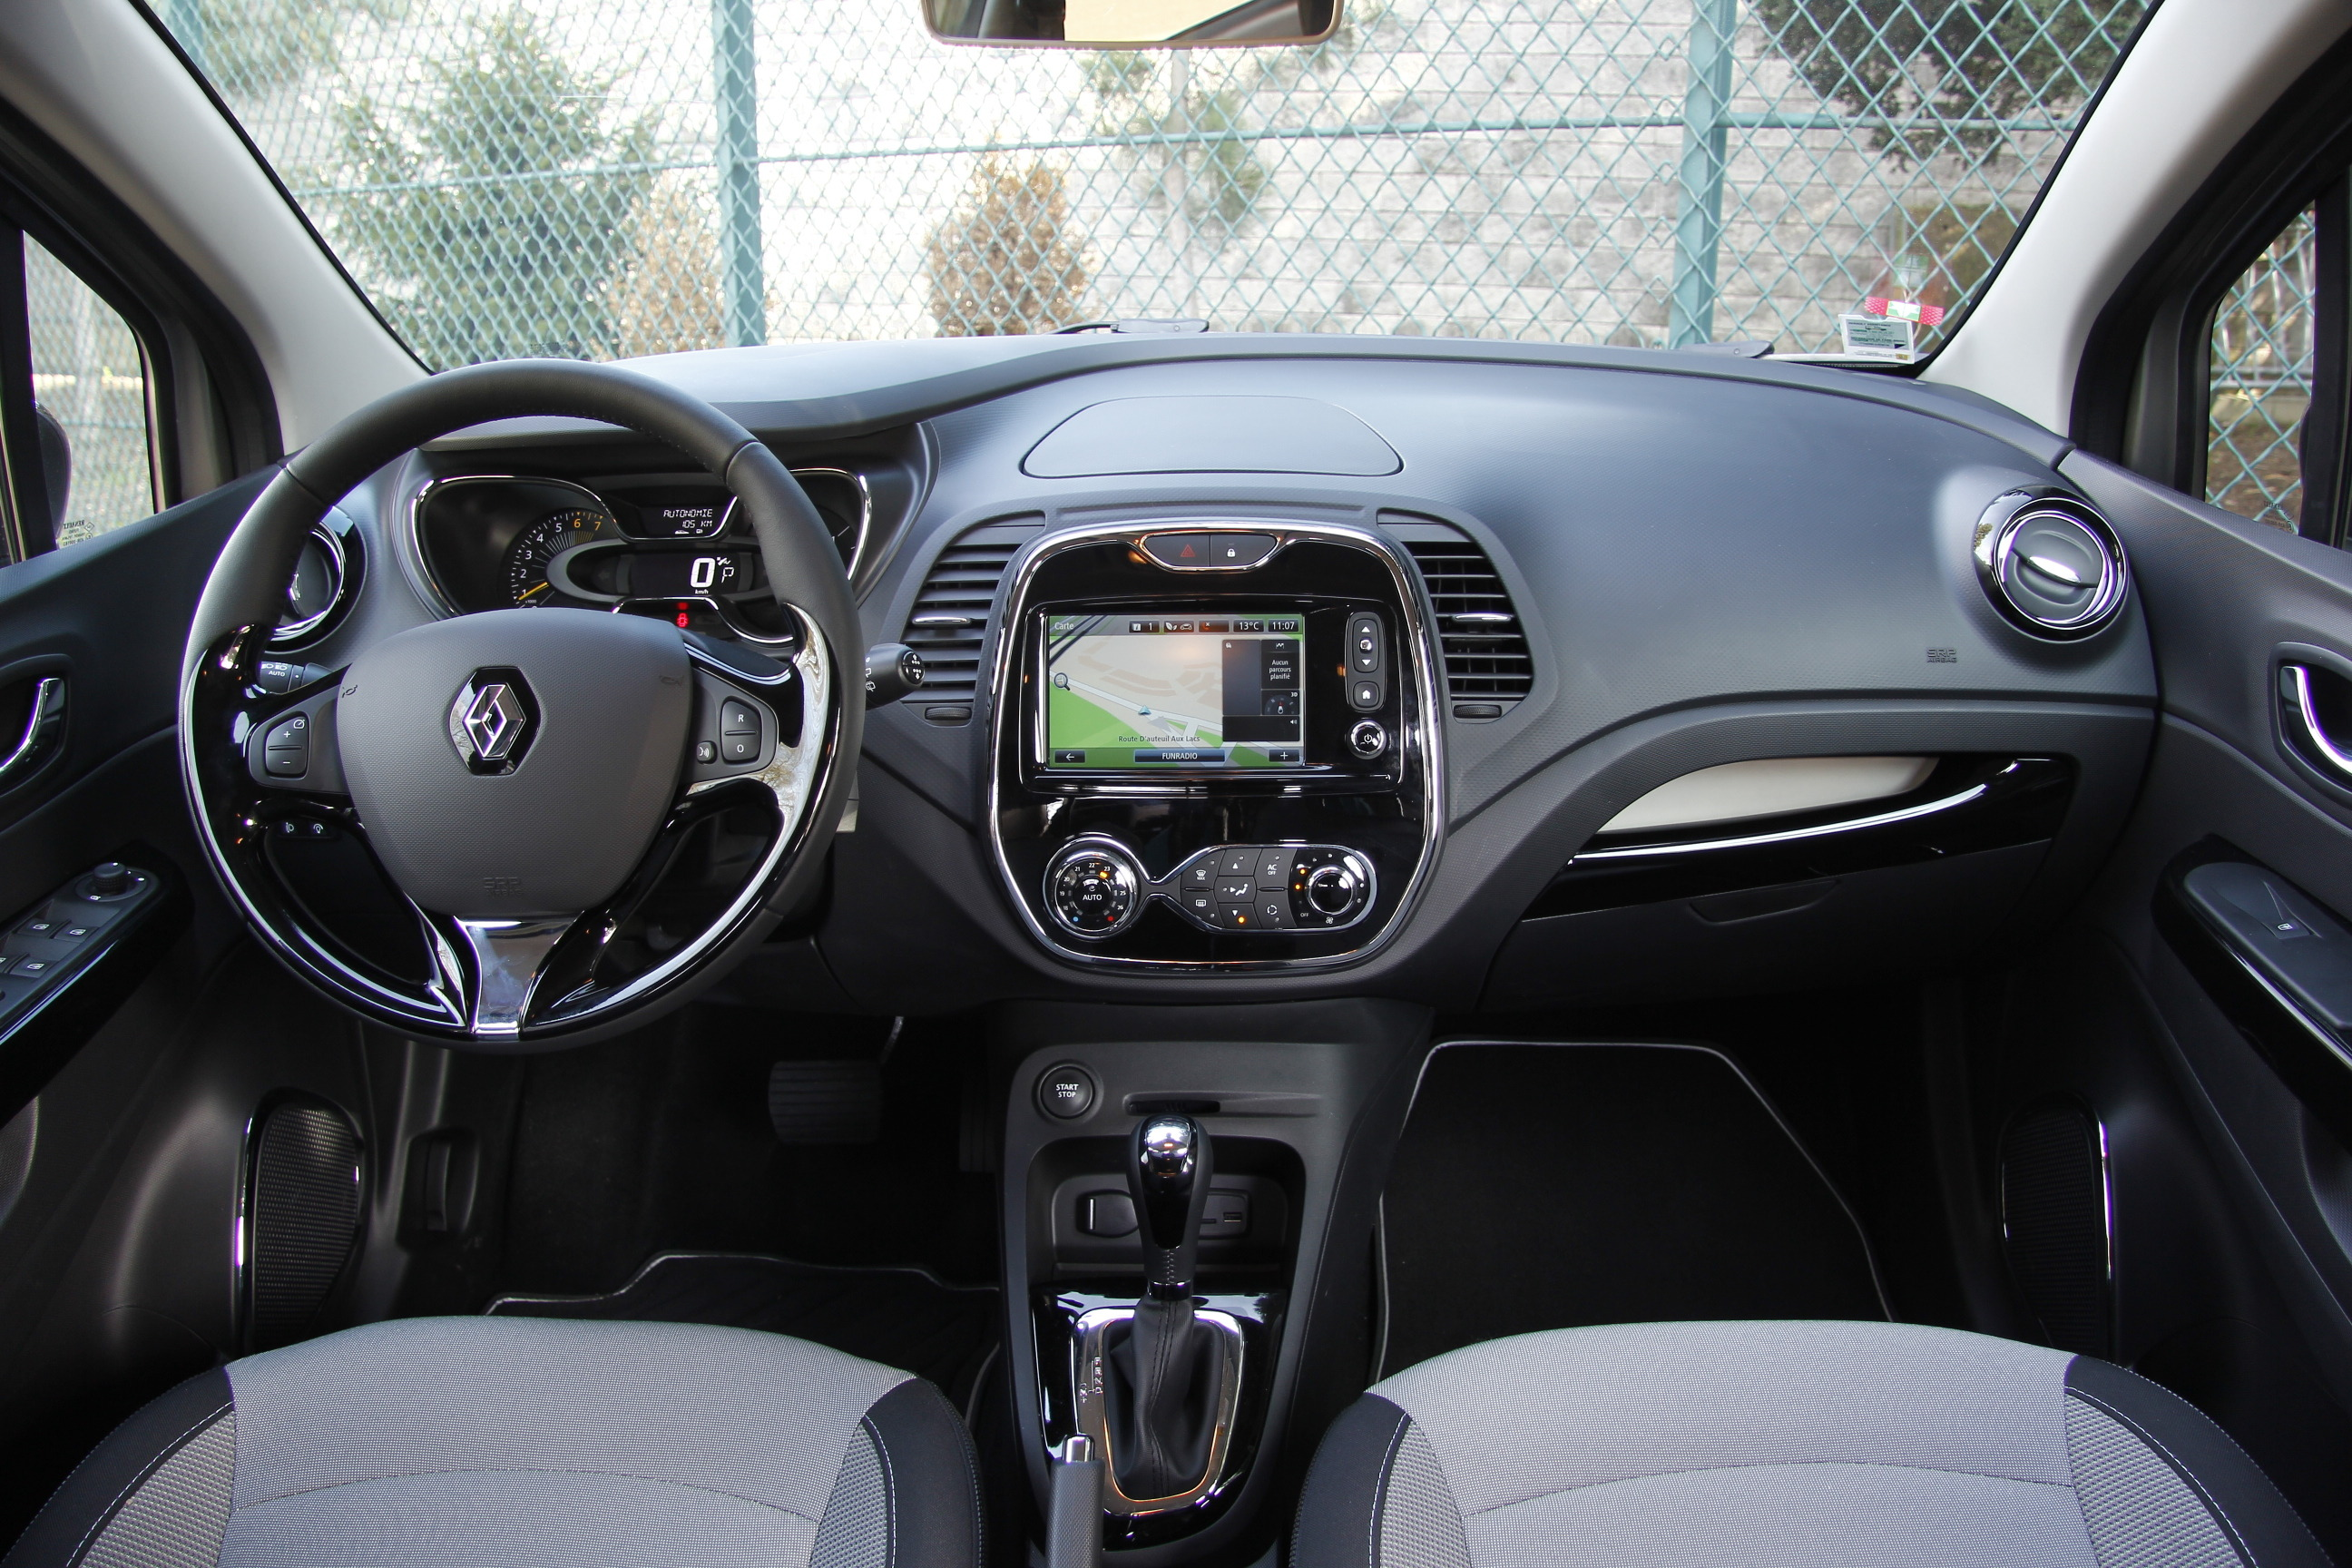 Essai renault captur 1 2 tce 120 intens edc on reuses for Photo interieur